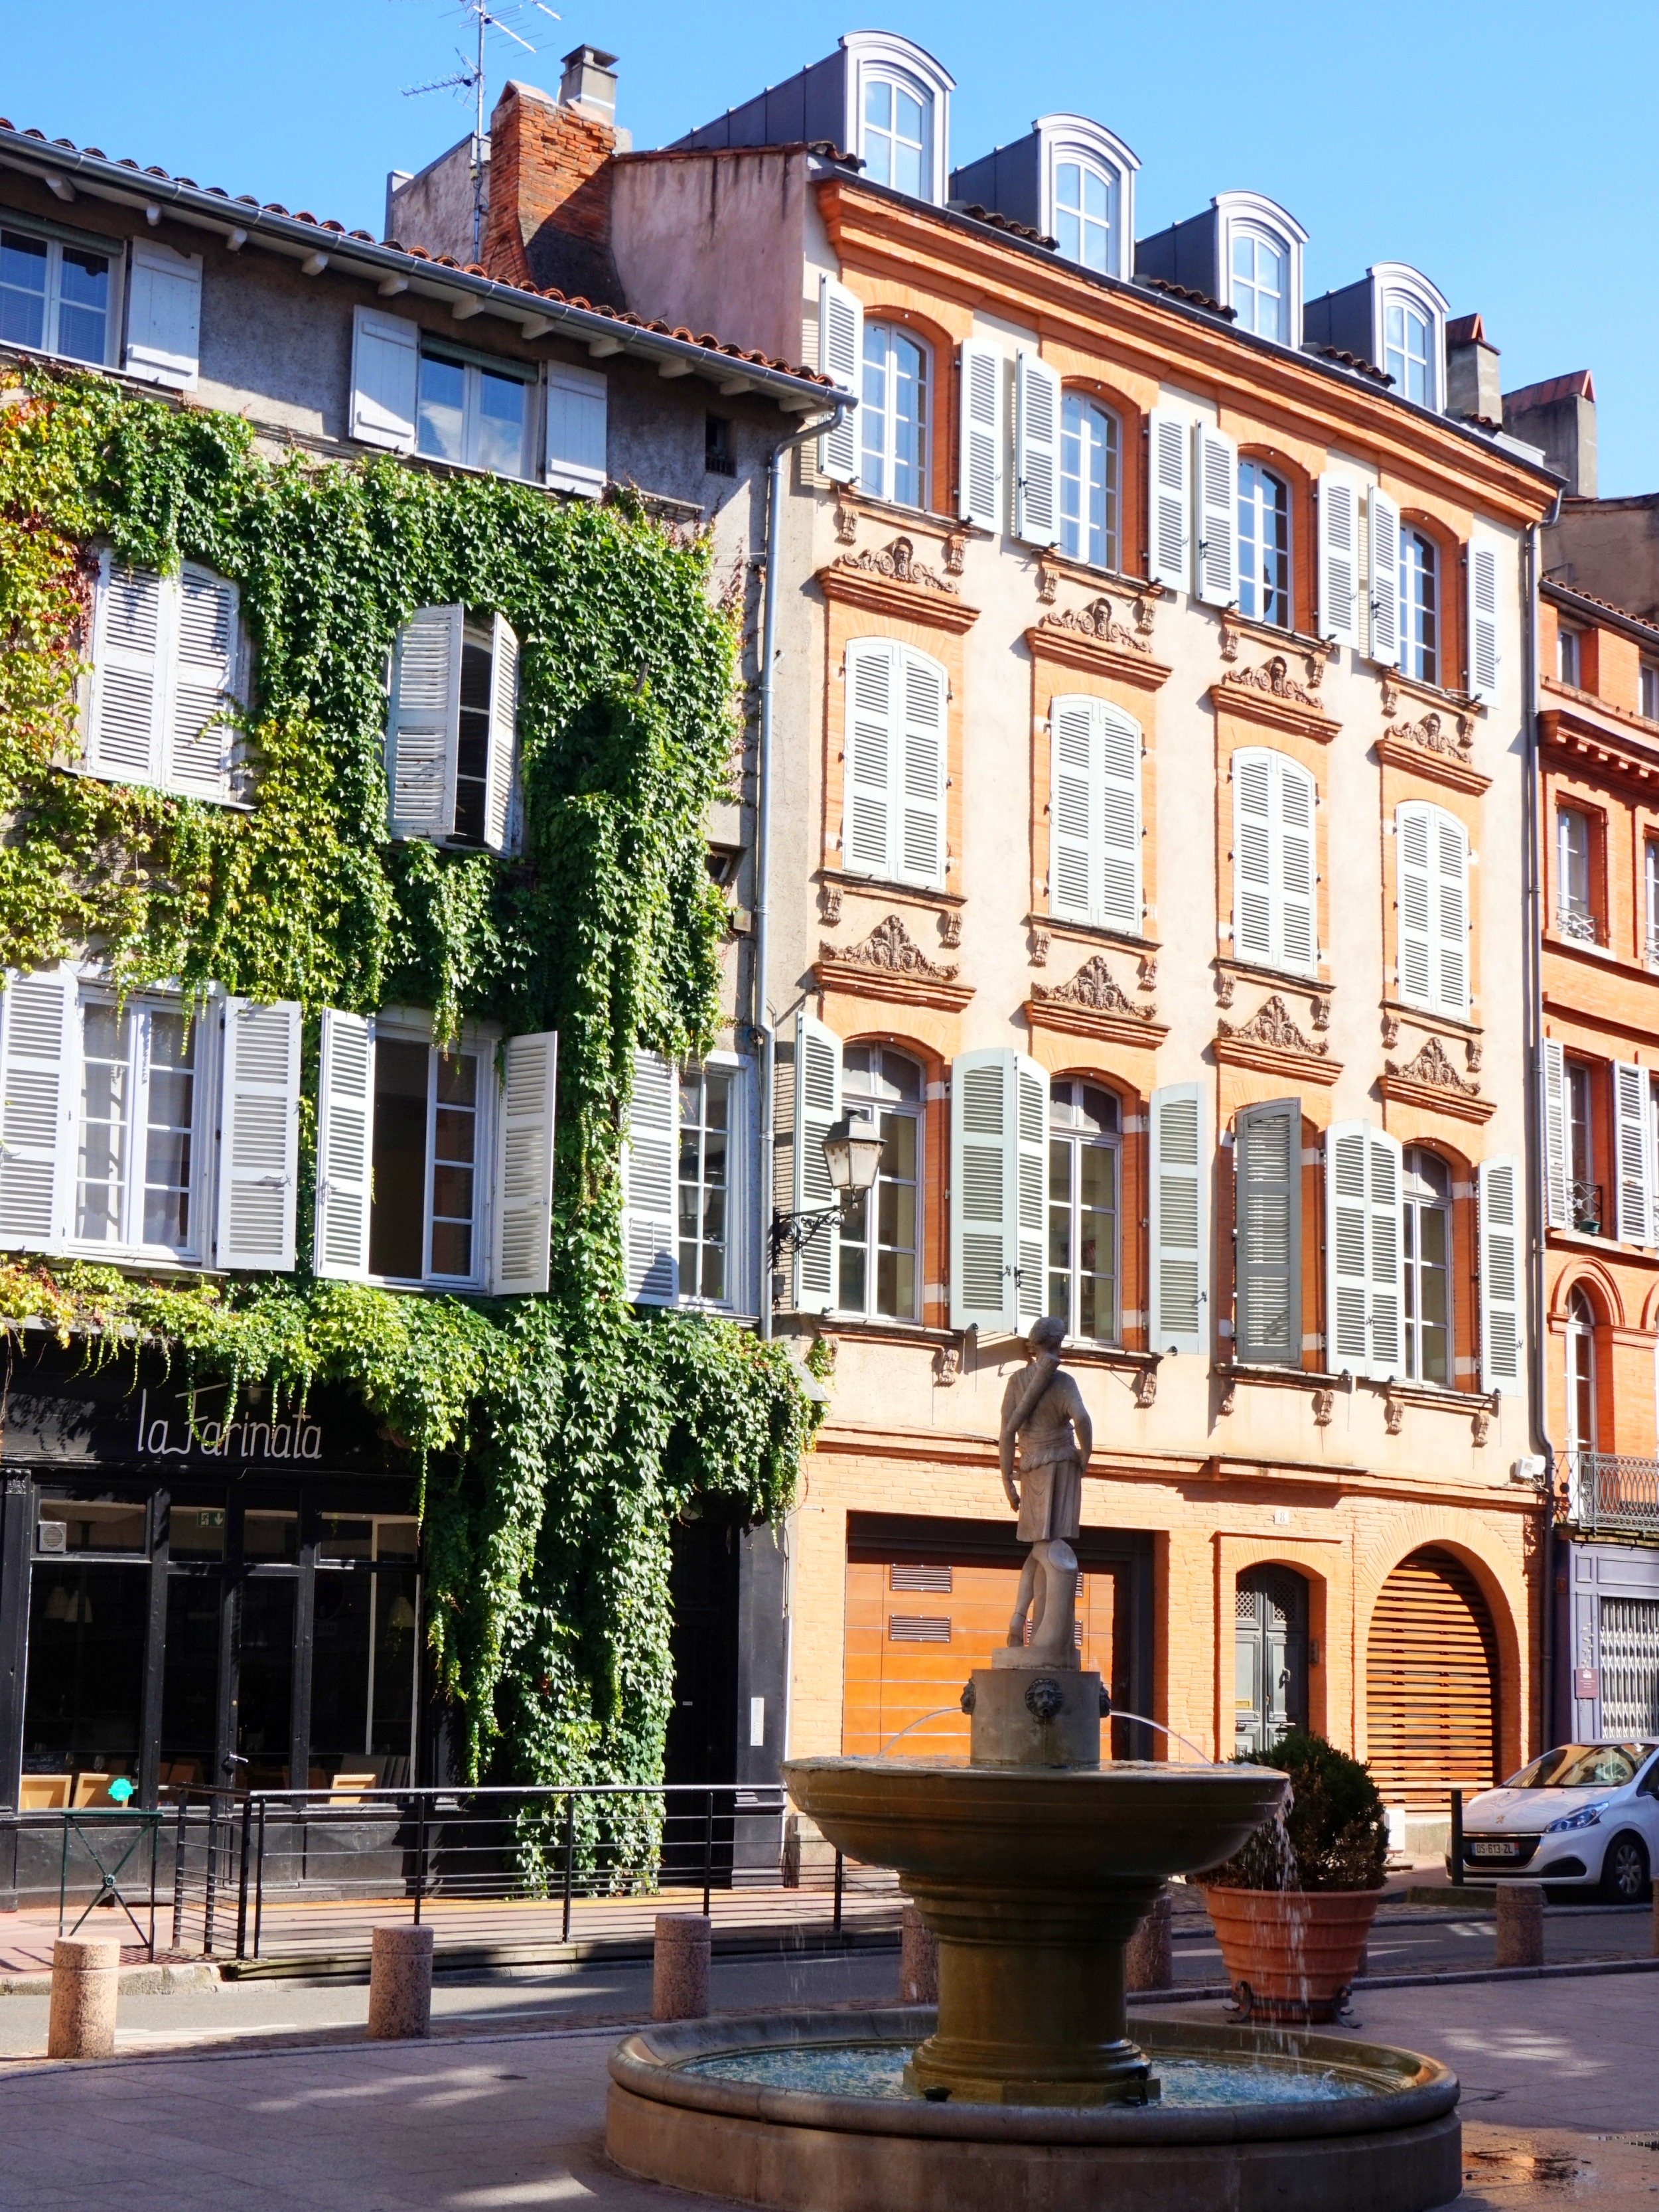 Balade-Toulouse-St-Etienne-14